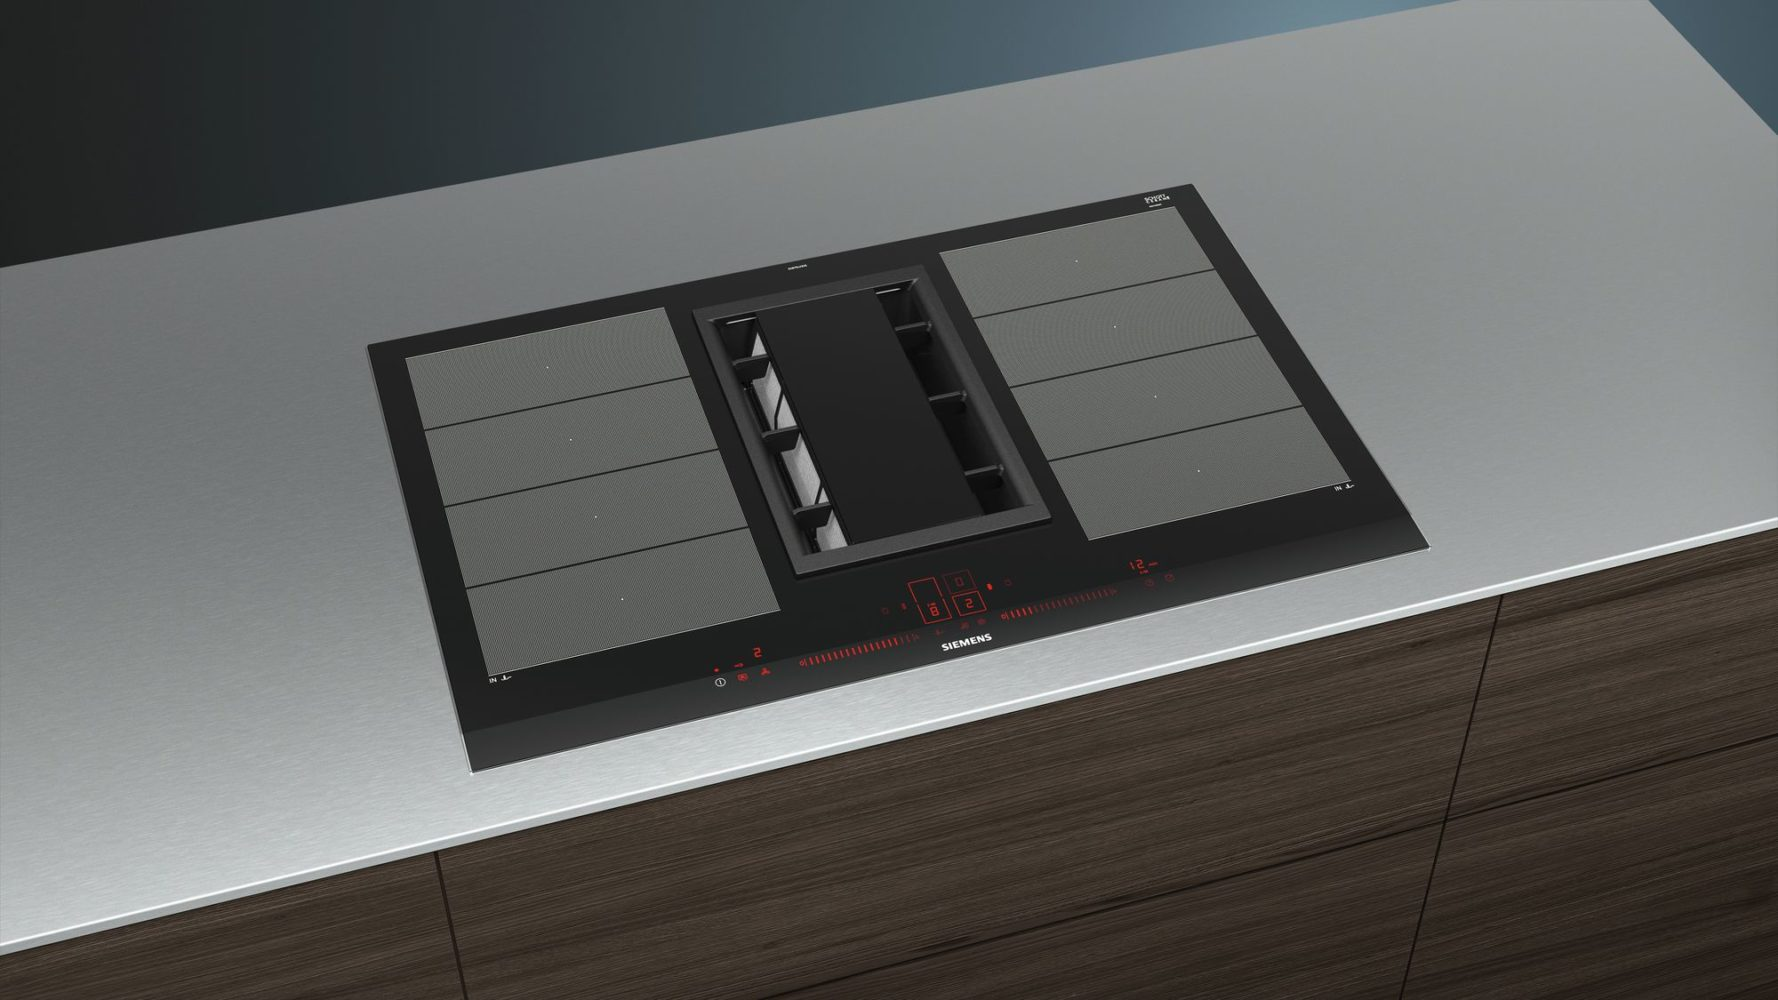 siemens downdraft hob palazzo bespoke kitchens bathrooms glasgow. Black Bedroom Furniture Sets. Home Design Ideas